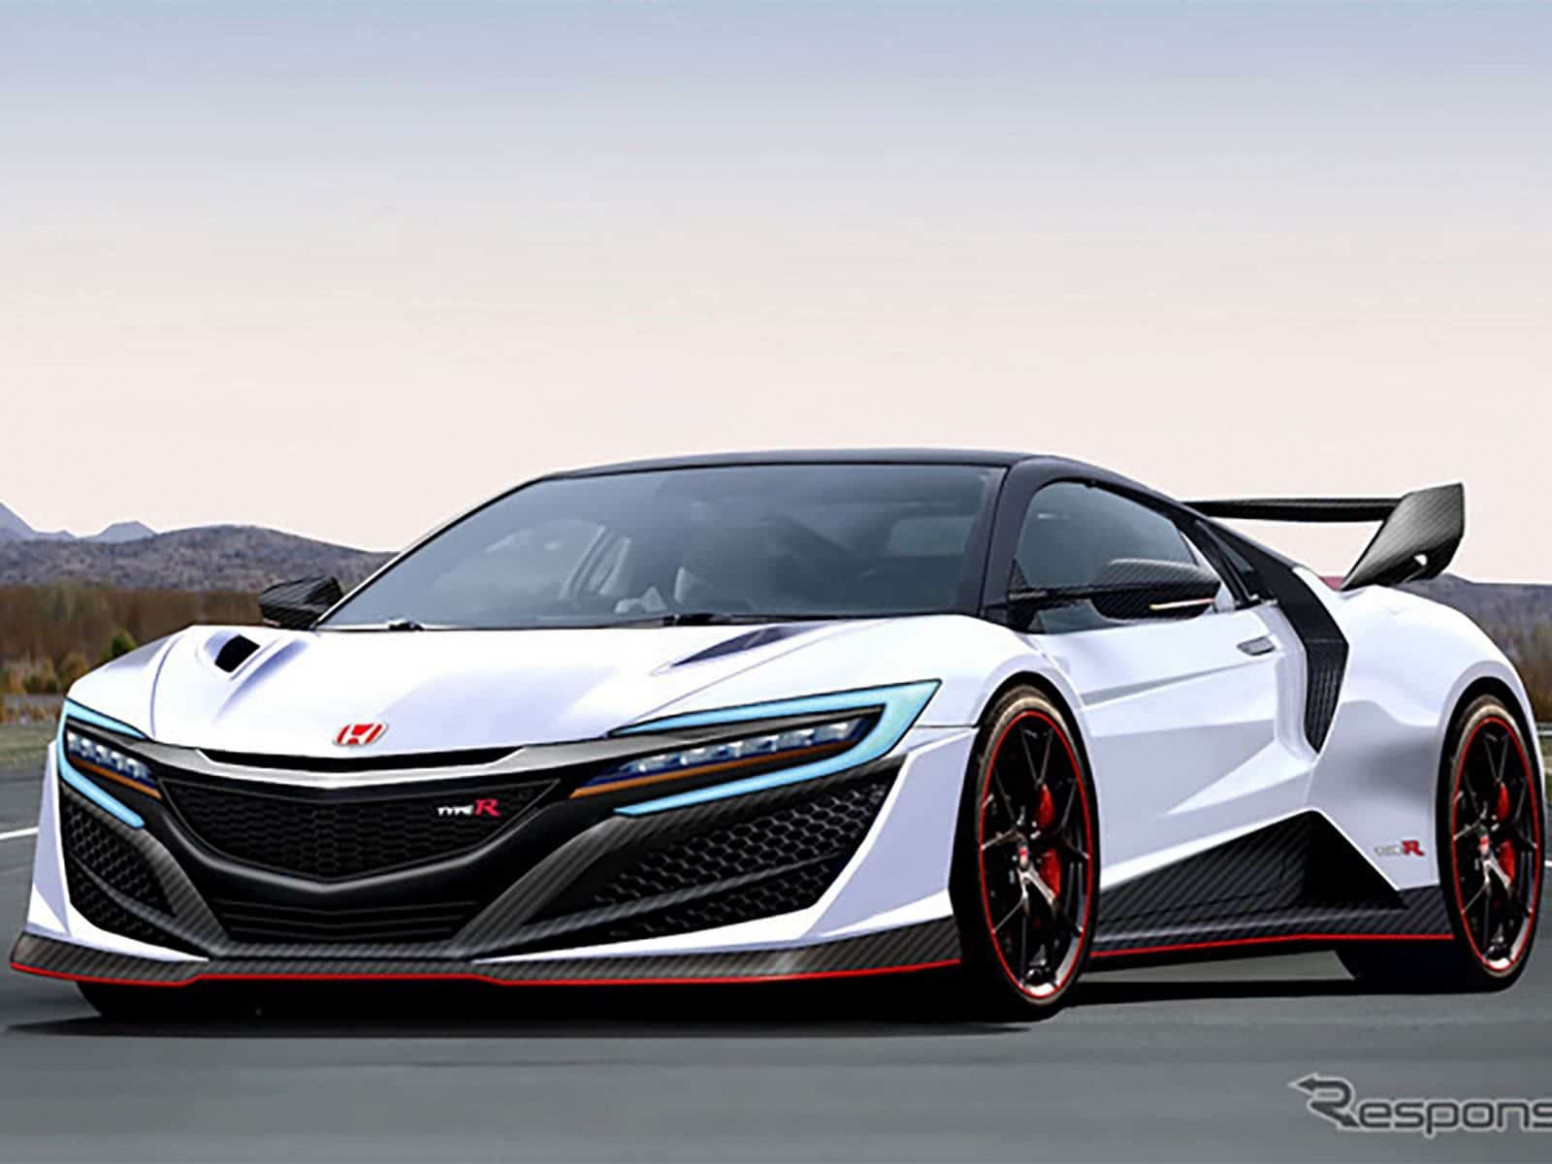 Redesign and Concept 2022 Acura NSX